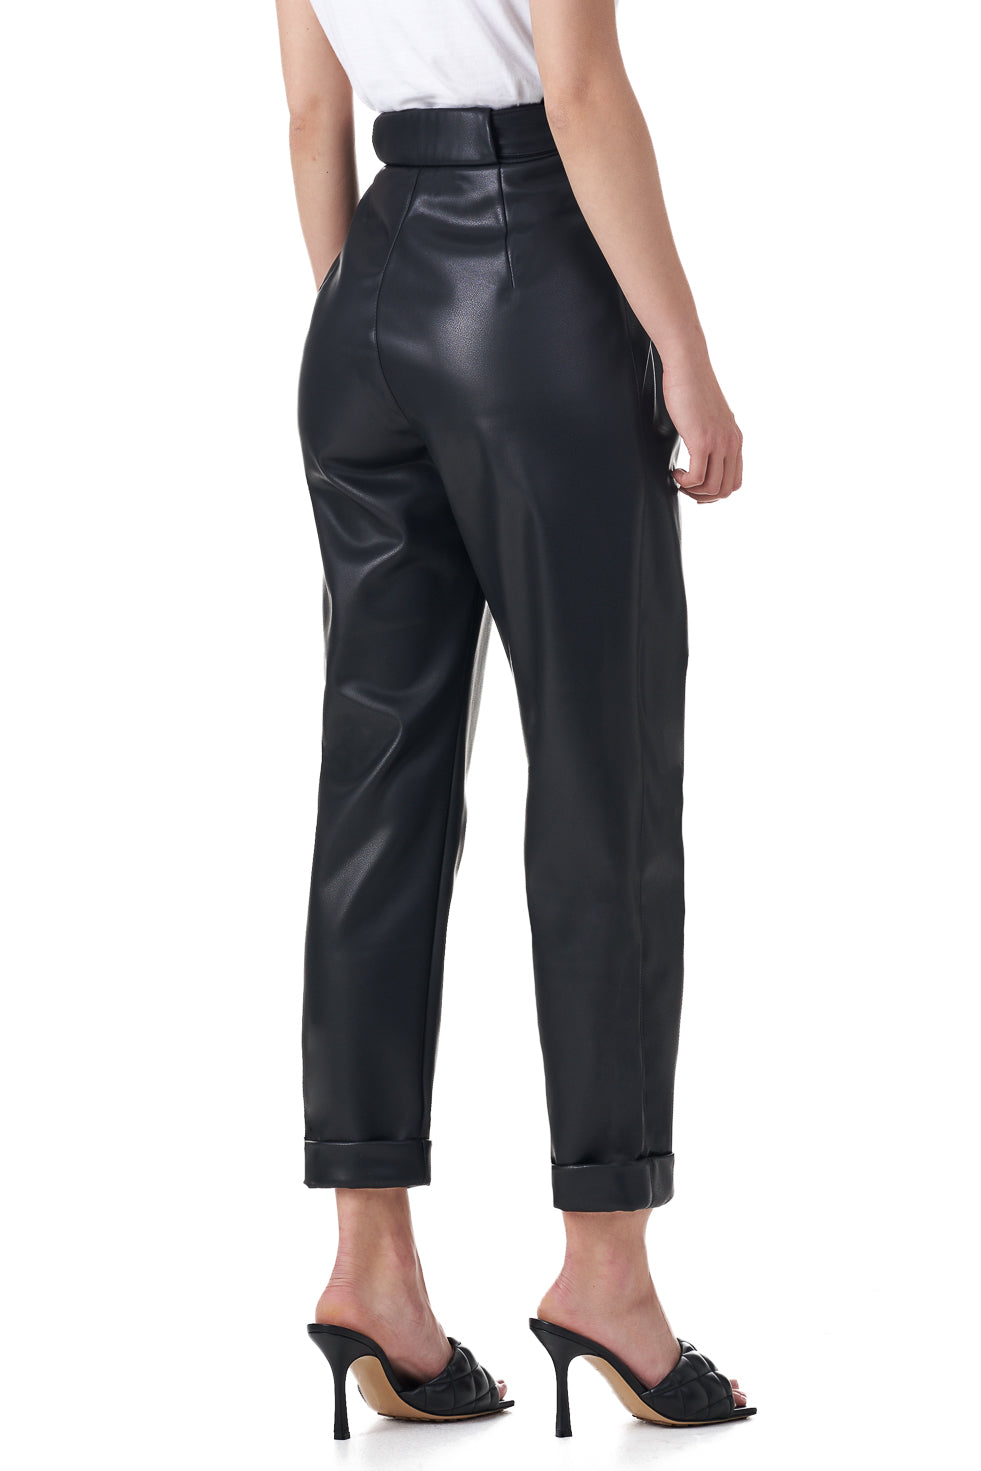 Mony Black faux leather slim leg trousers